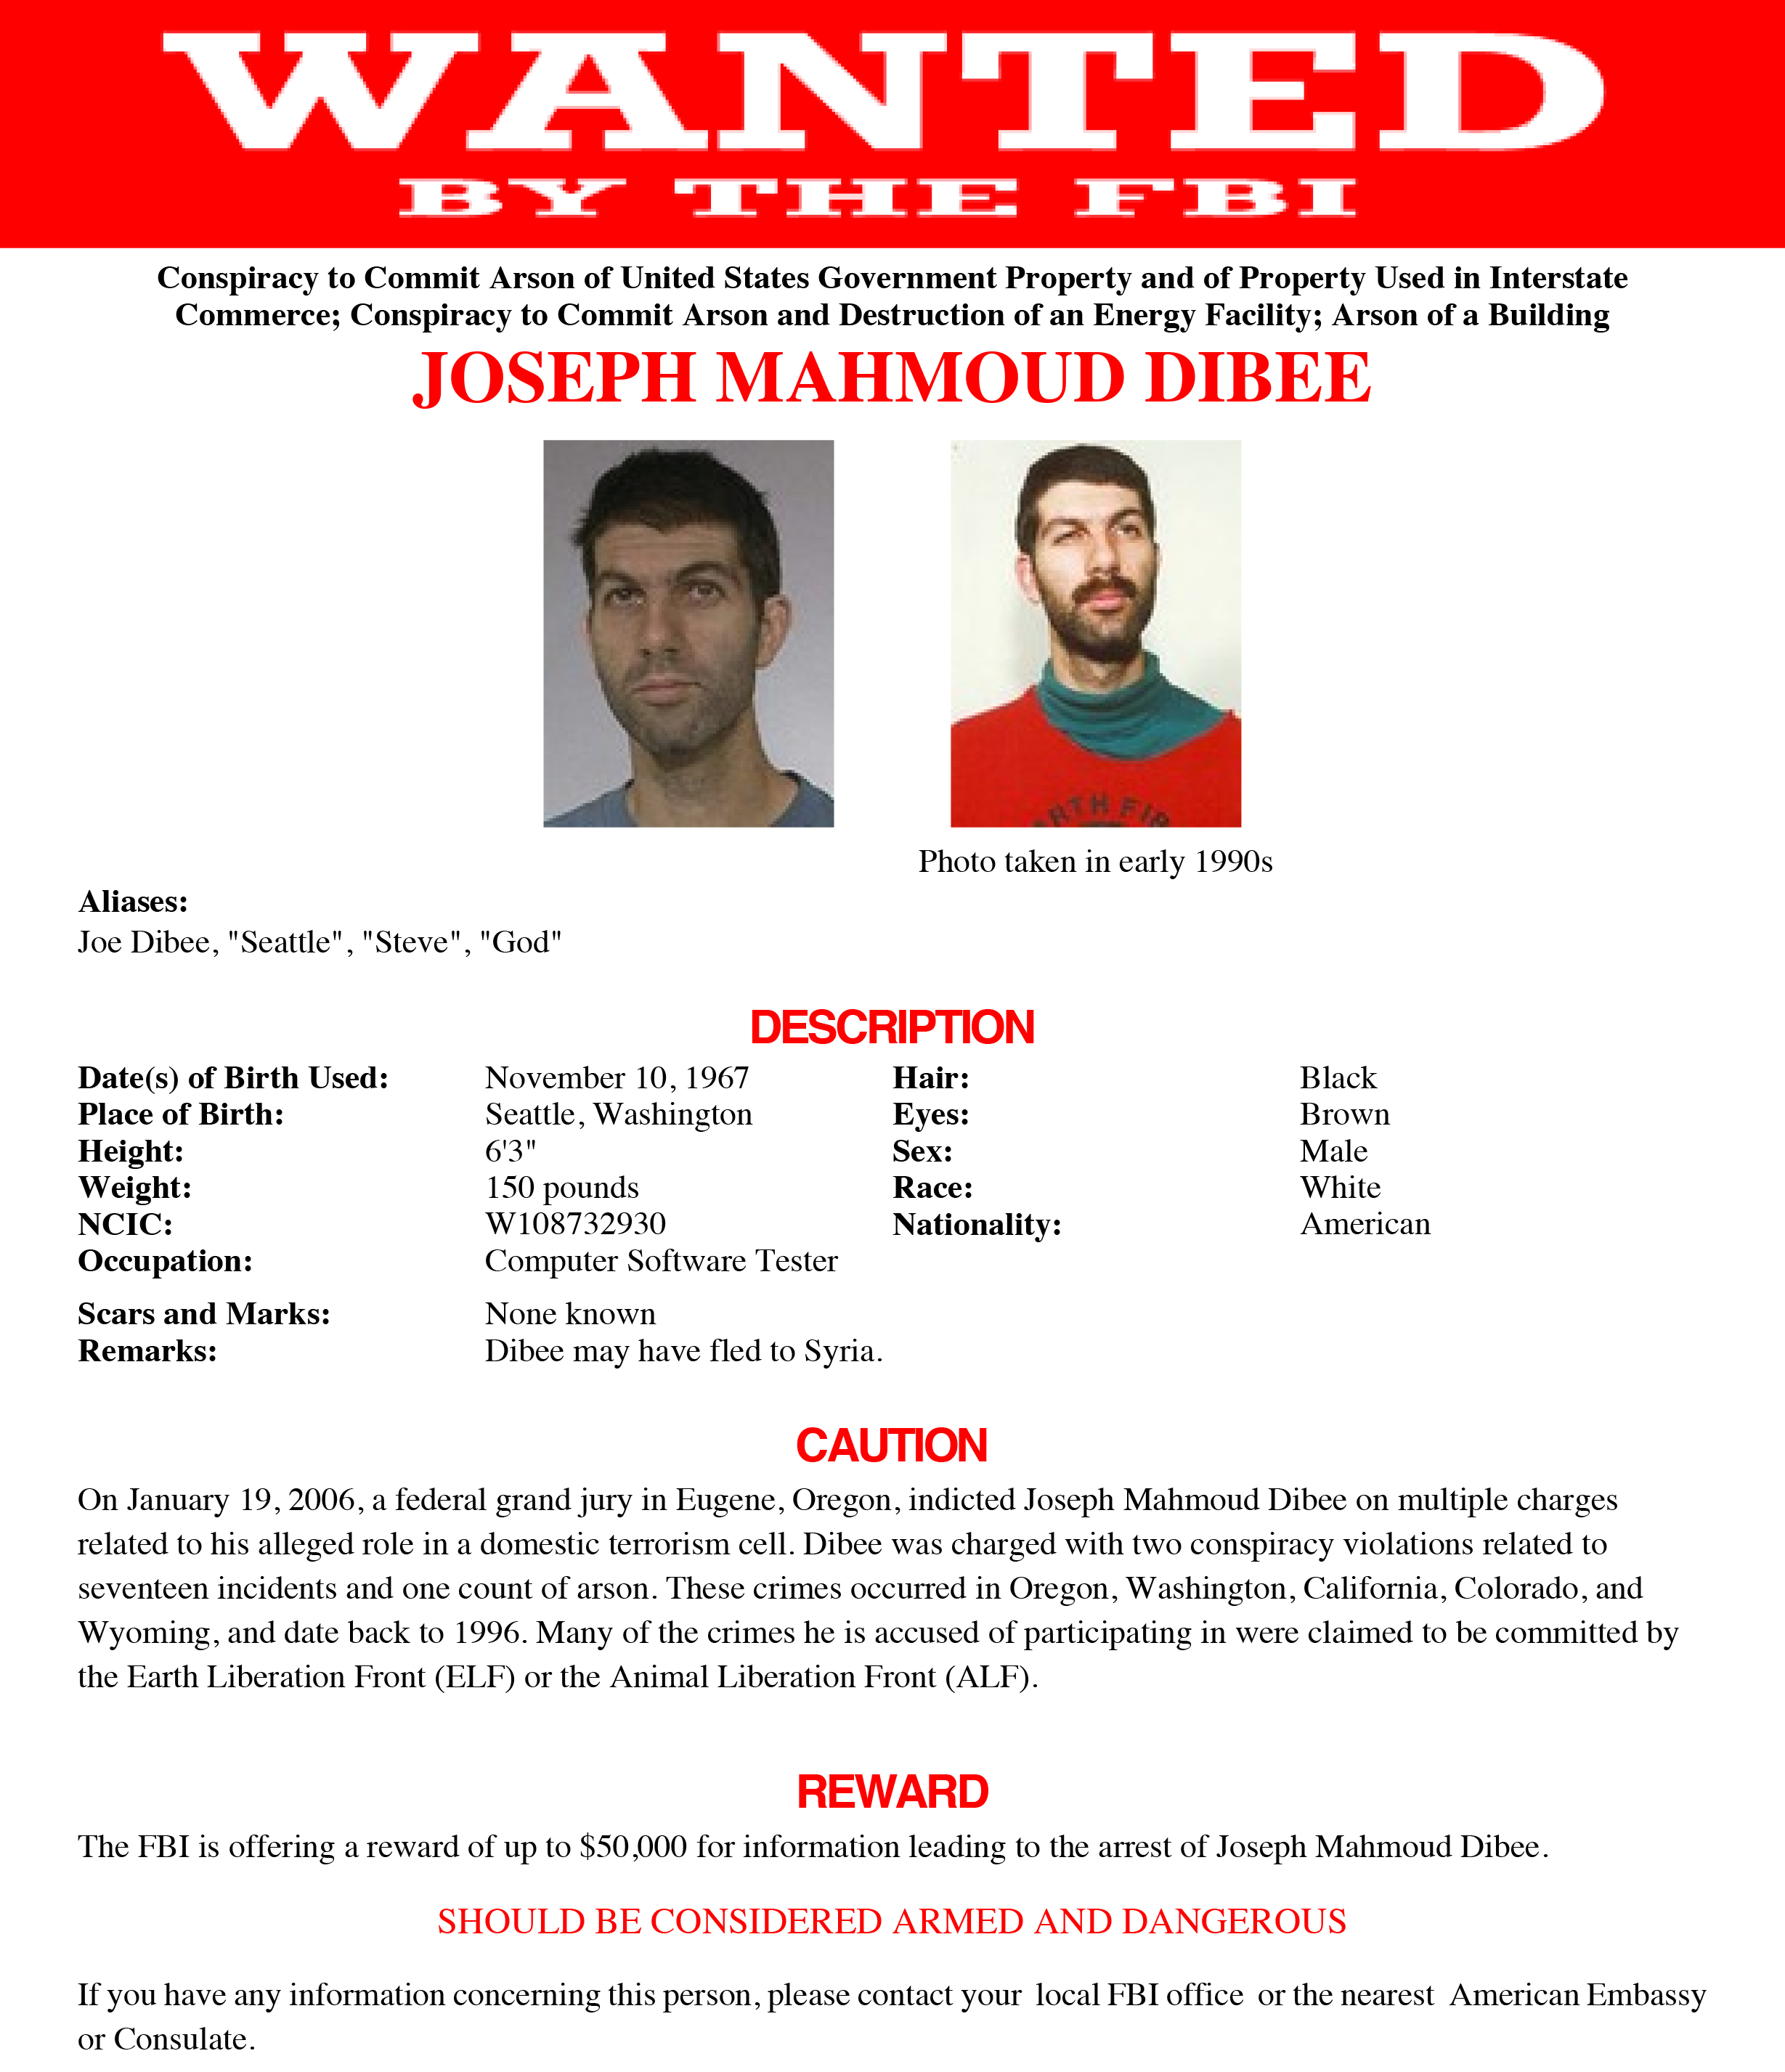 The FBI put out a wanted poster with a $50,000 reward, searching for Joseph Dibee after he was indicted for his alleged role in crimes committed by the Earth Liberation Front or the Animal Liberation Front.